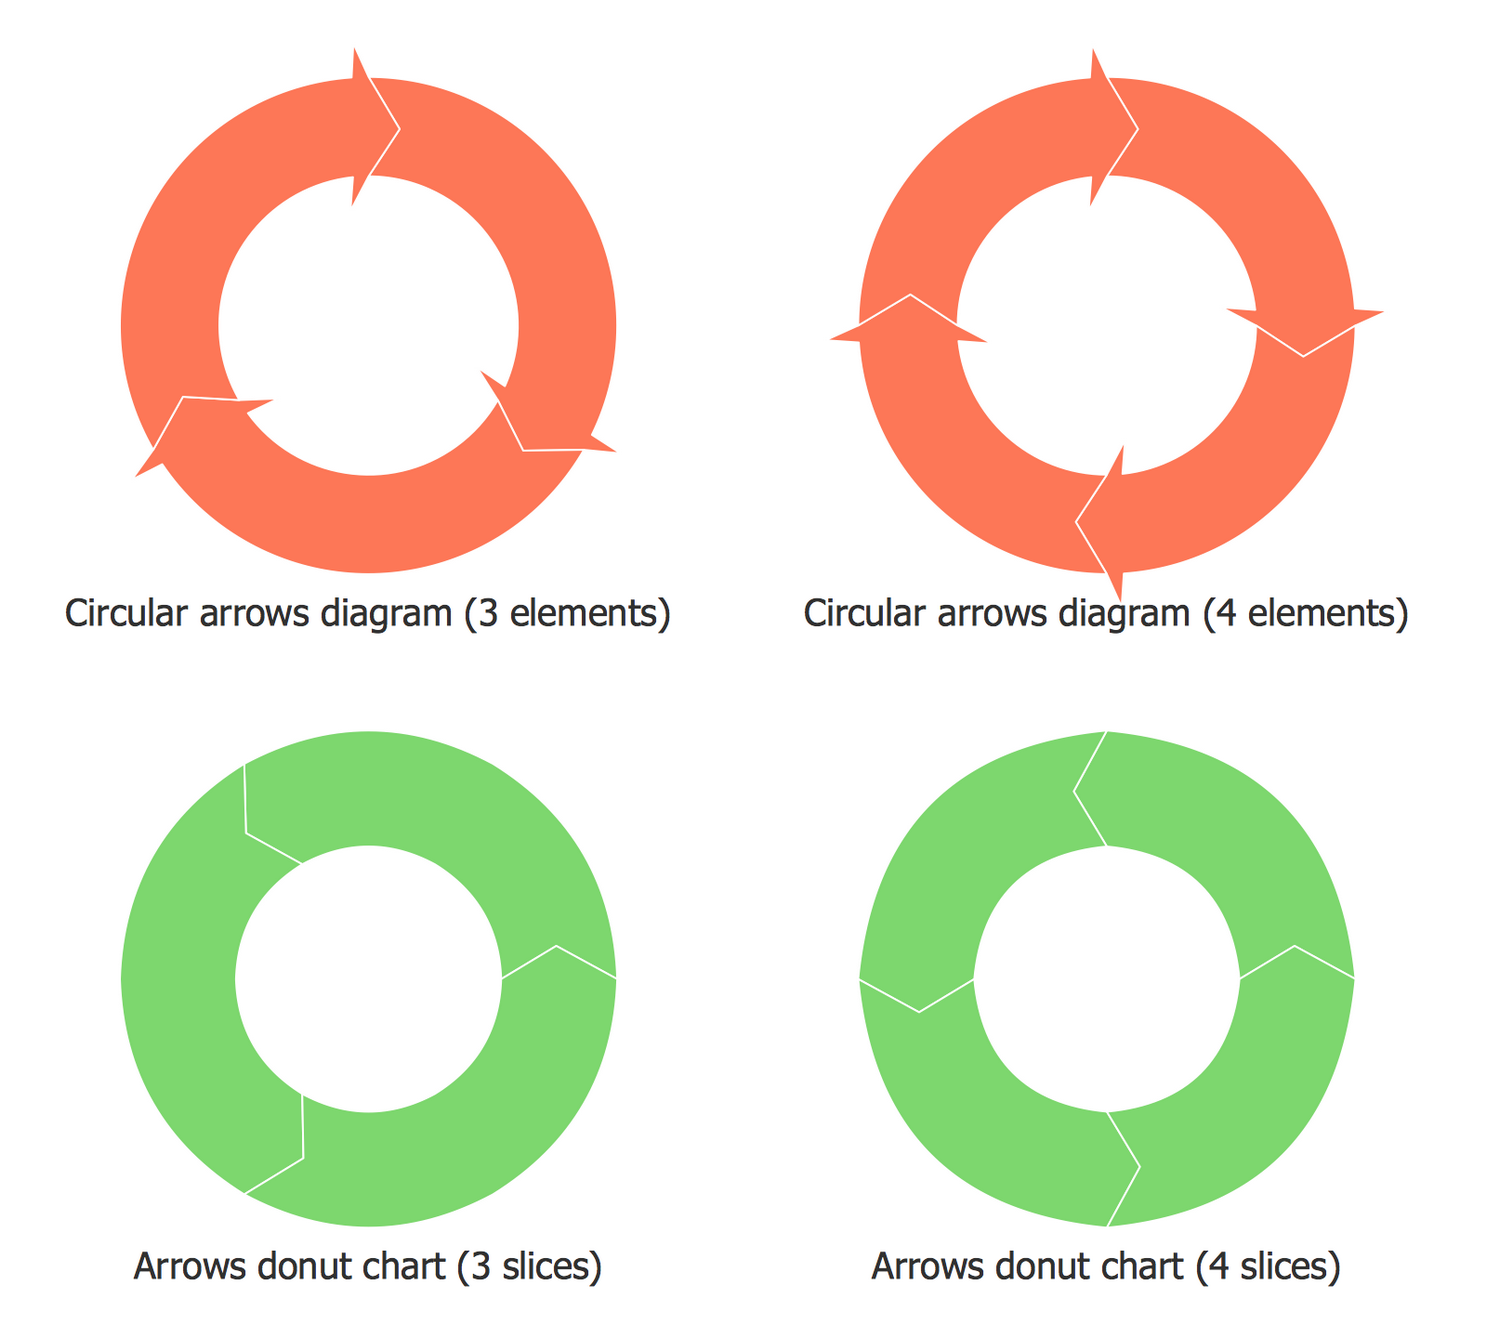 Design Elements — Basic Circular Arrows Diagrams